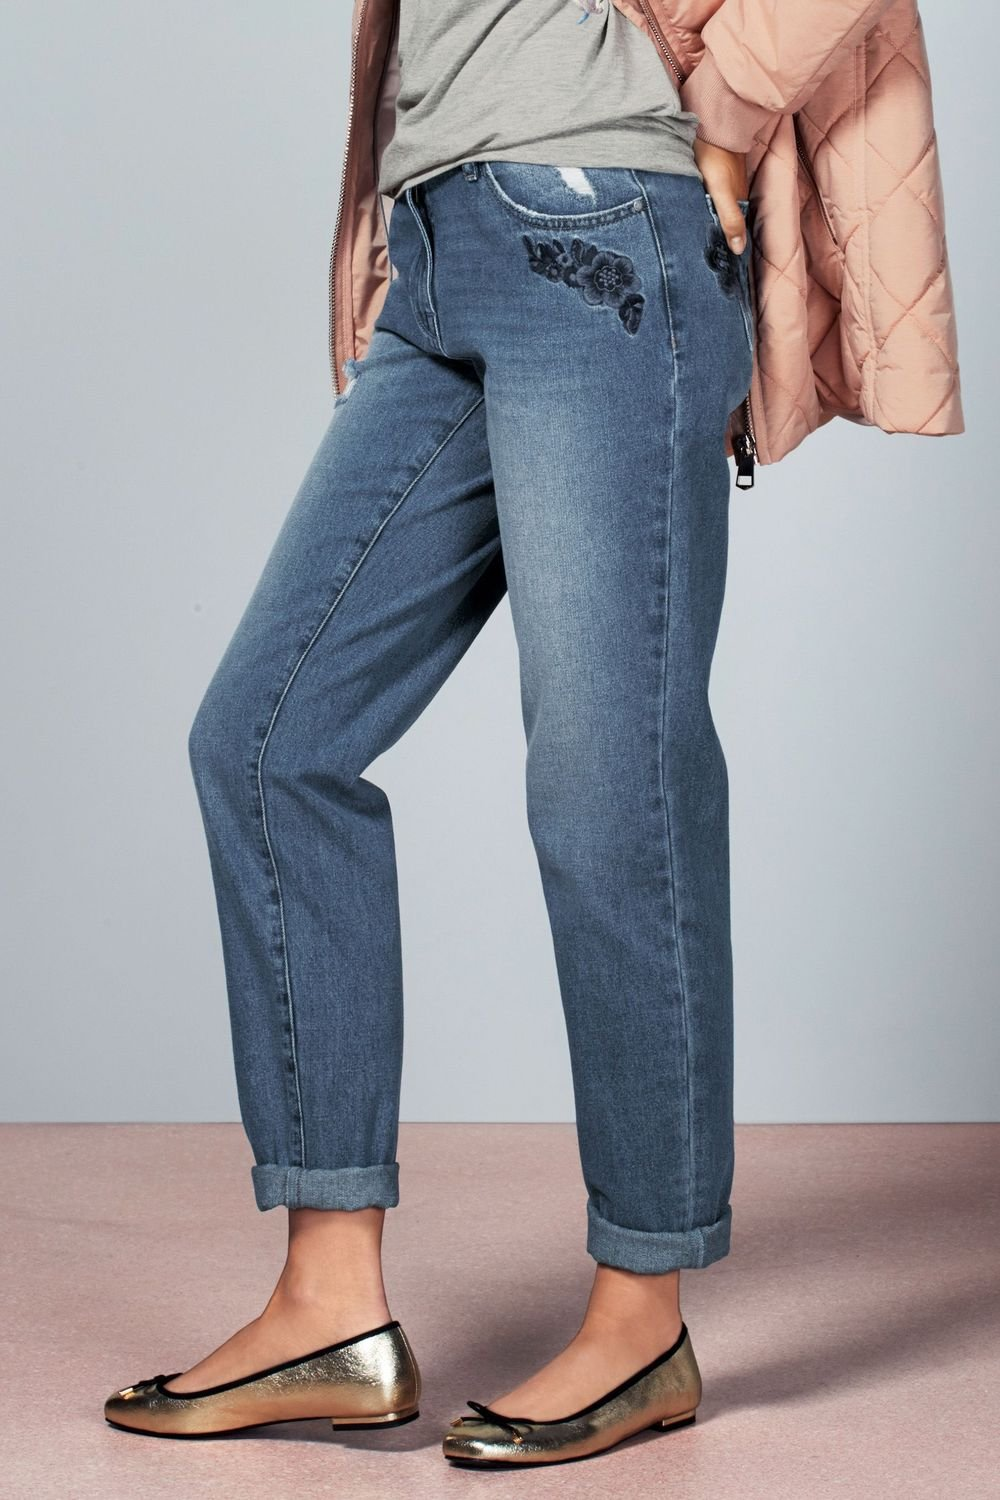 Next Embroidered Flower Relaxed Jeans - Petite Online | Shop EziBuy